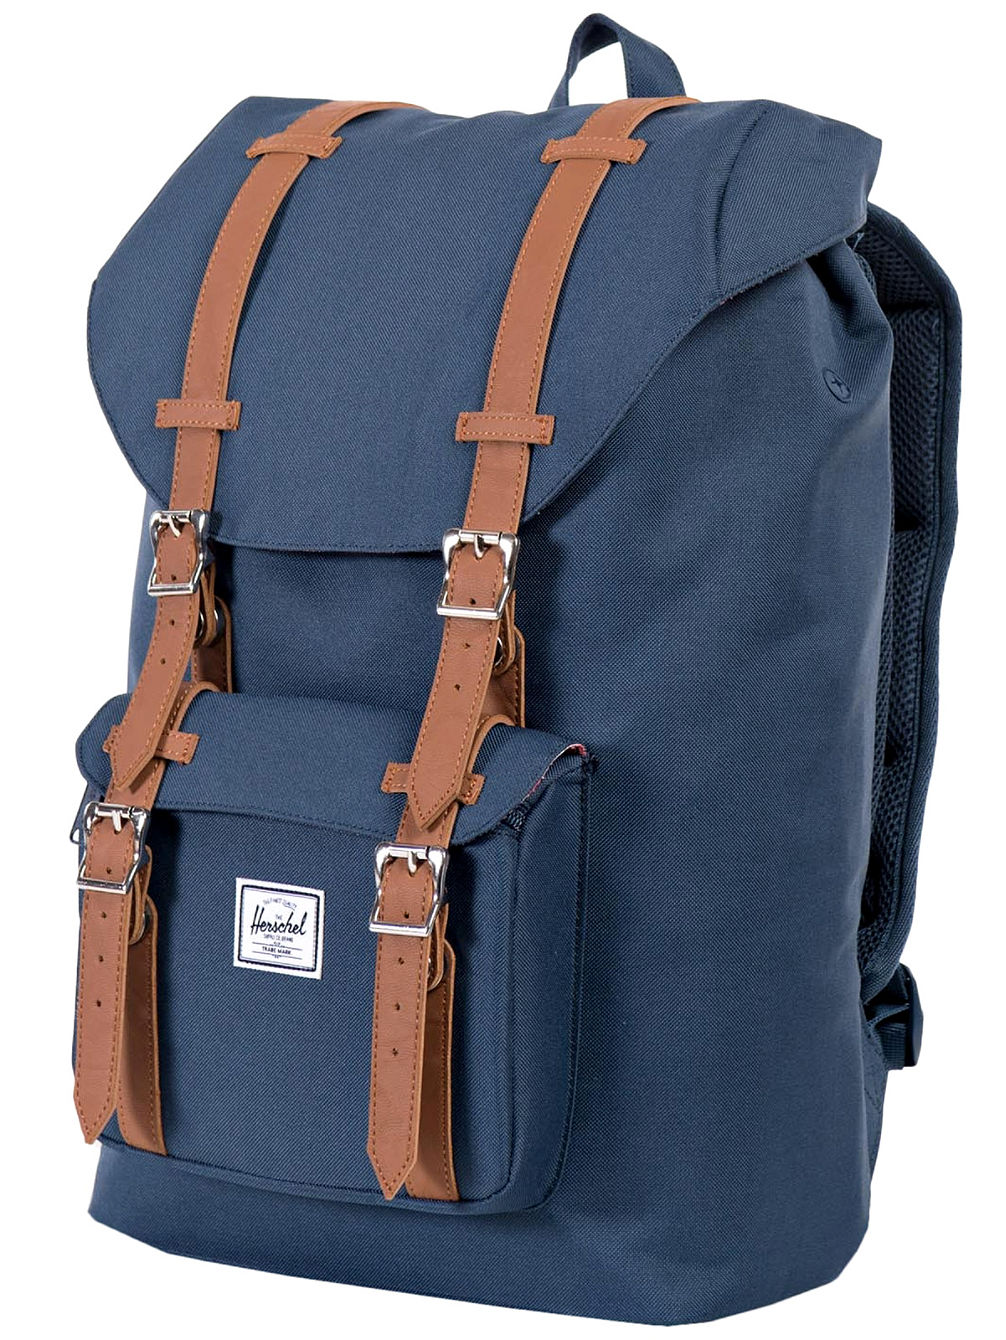 eab23a6d6d8c1 Buy Herschel Little America Mid-Volume Backpack Backpack online at ...